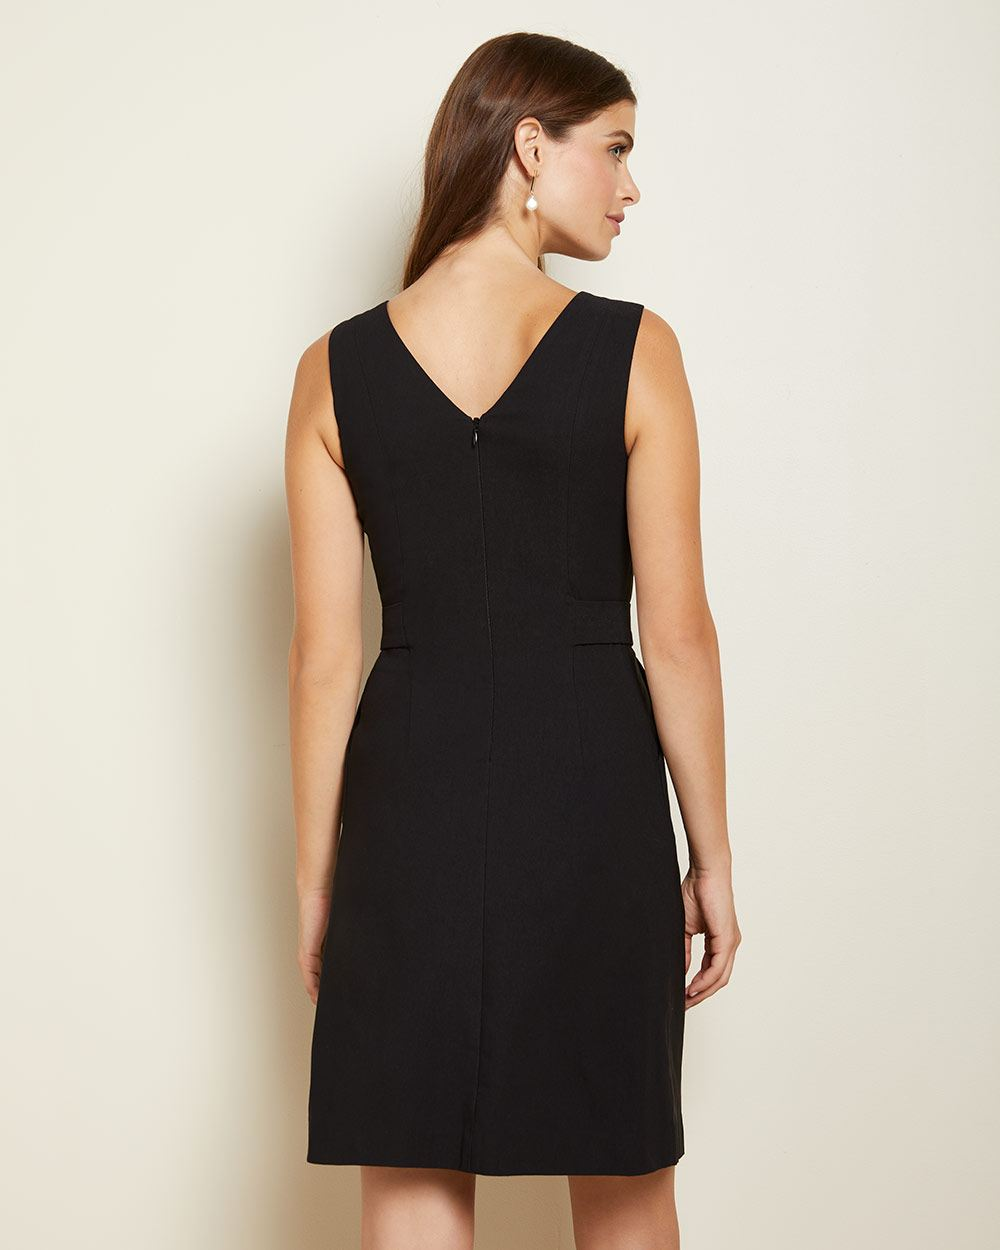 Black Fit and flare city dress with buttoned waist